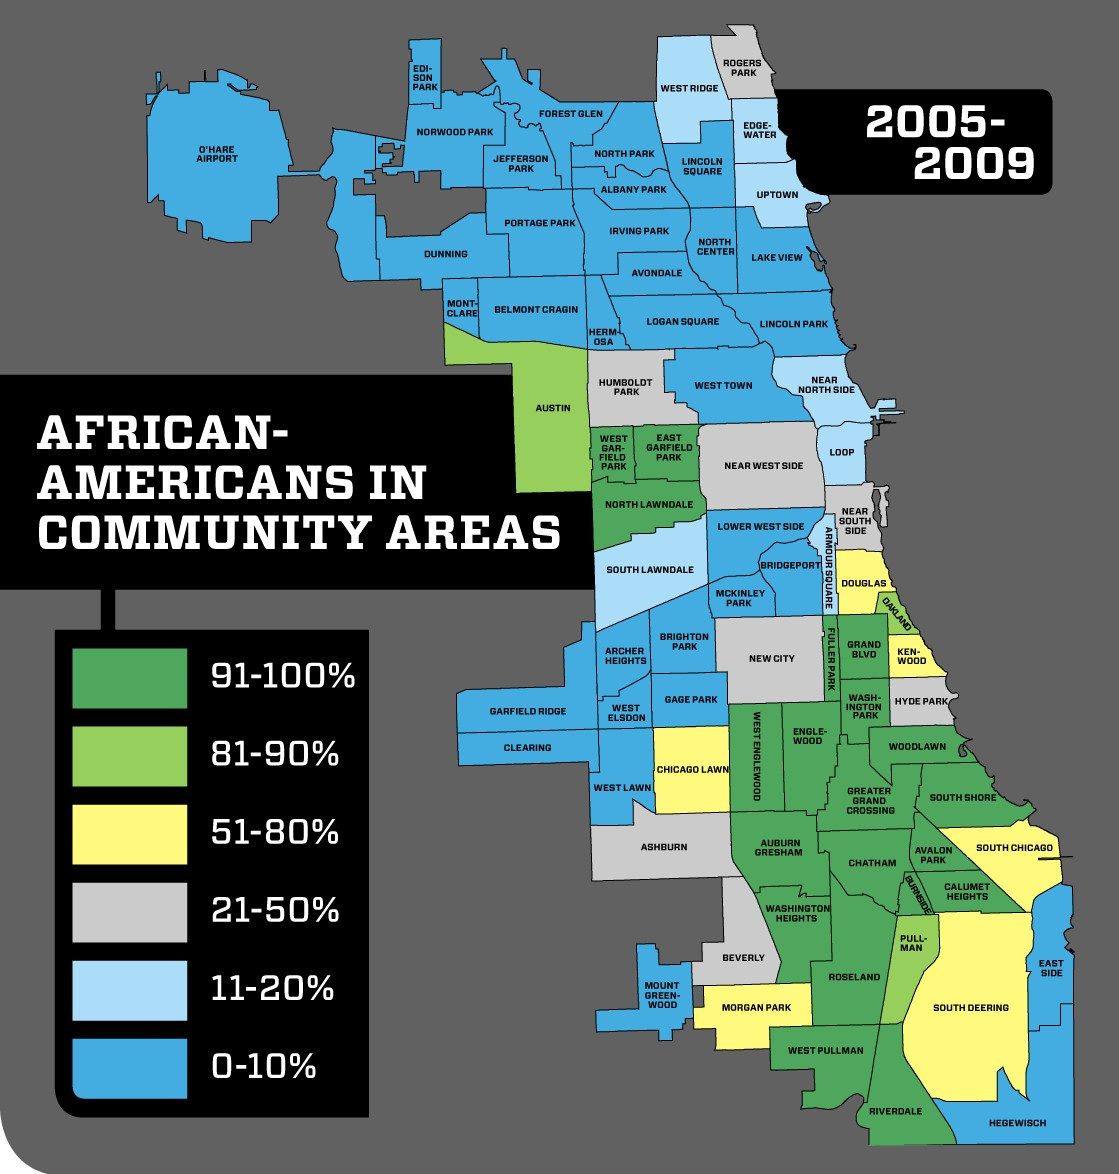 i couldn t help comparing her districts to the neighborhoods of chicago chicago is famous for its neighborhoods and those neighborhoods are famously